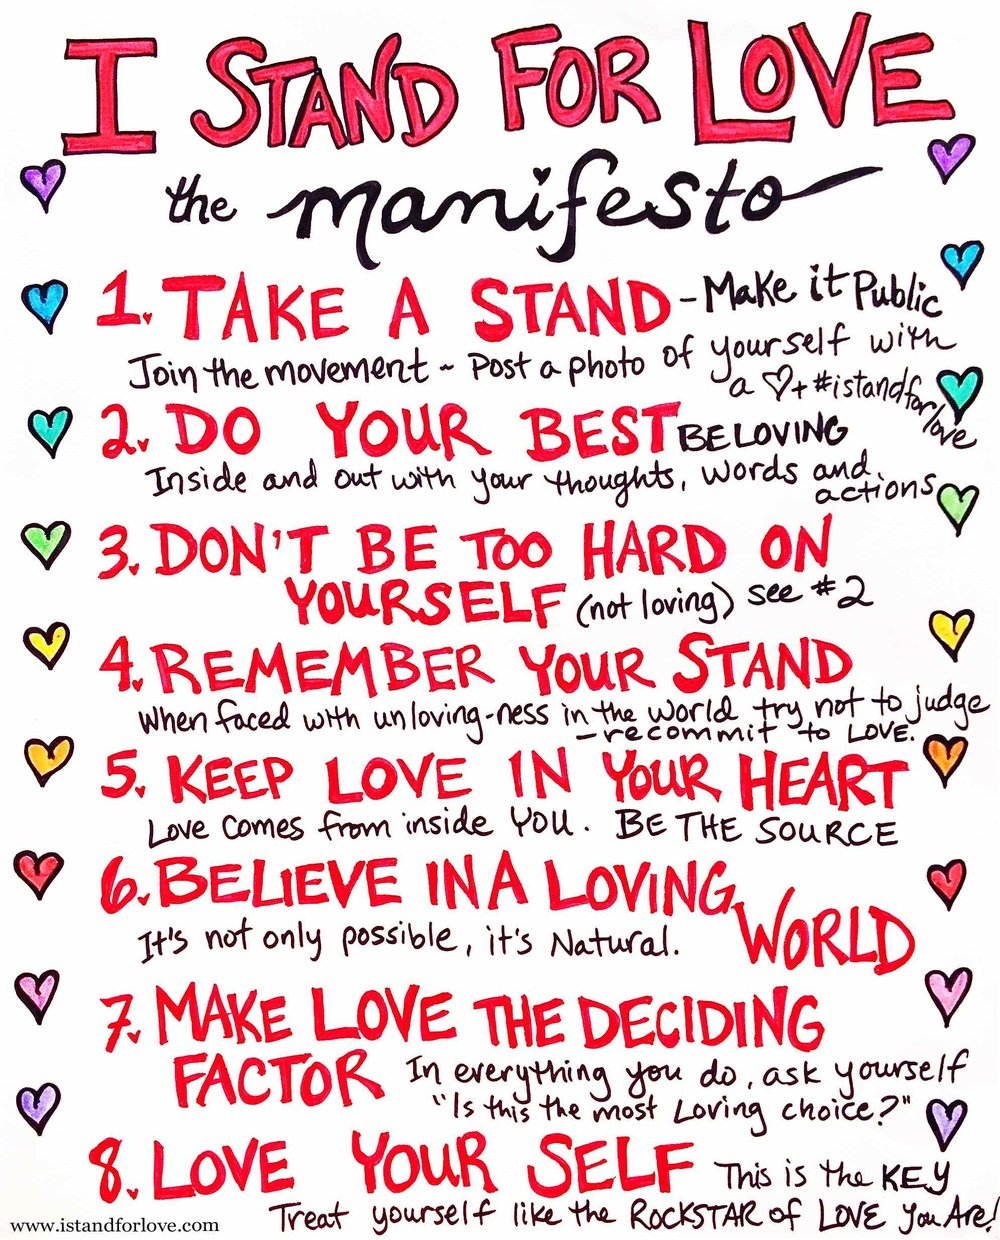 I Stand For Love Manifesto image.jpg